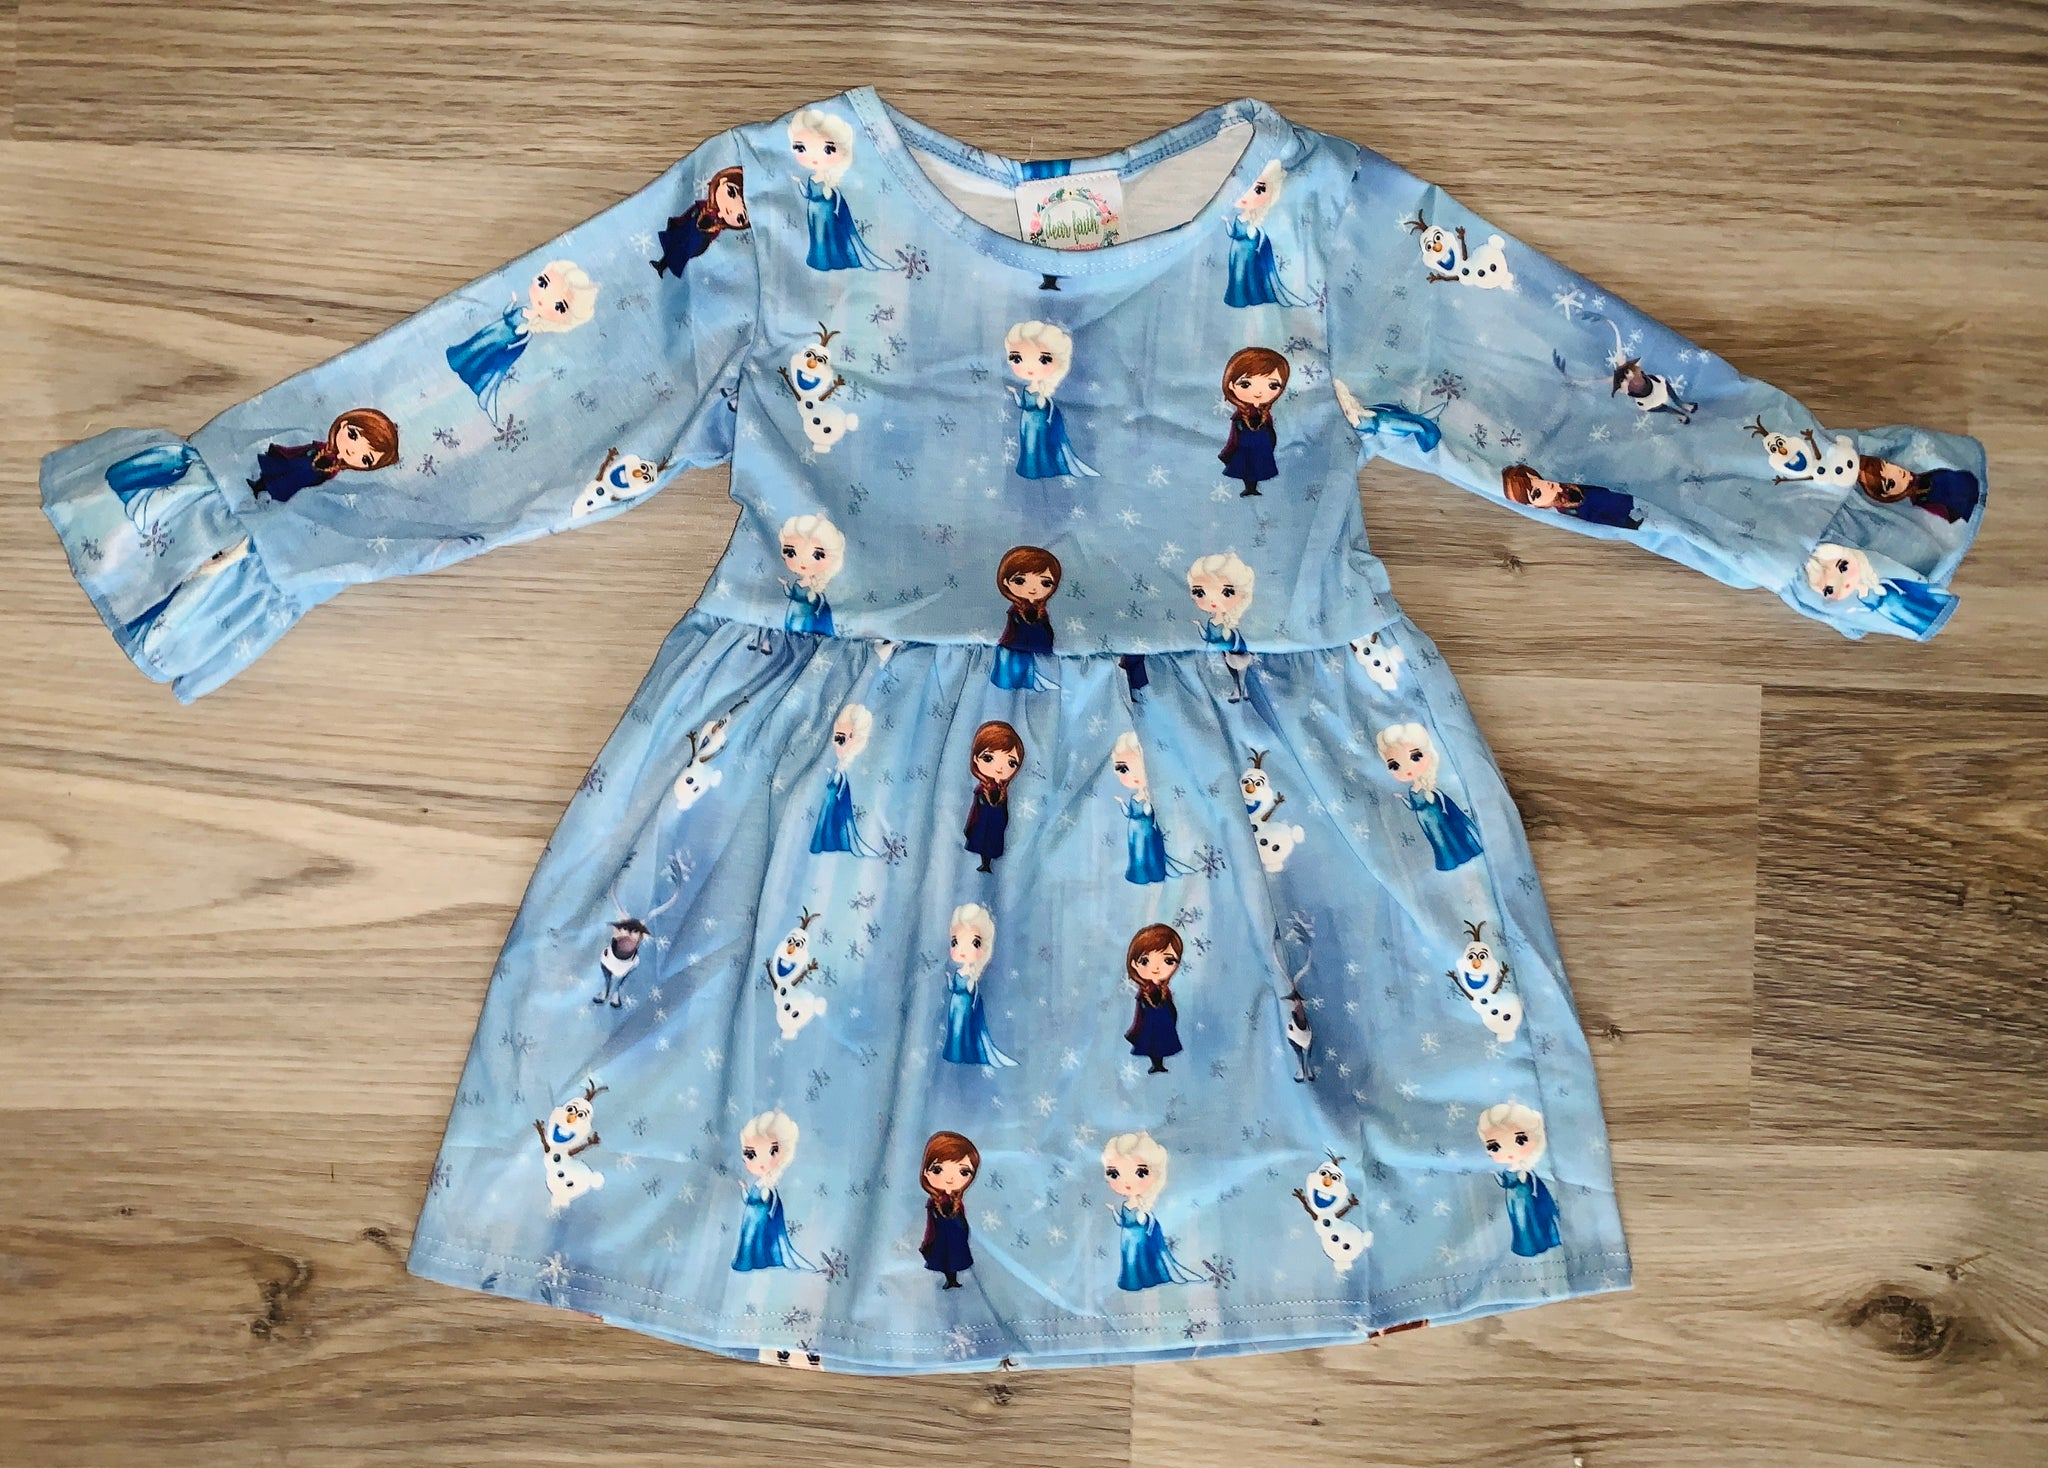 Light Blue Themed Princess Dress